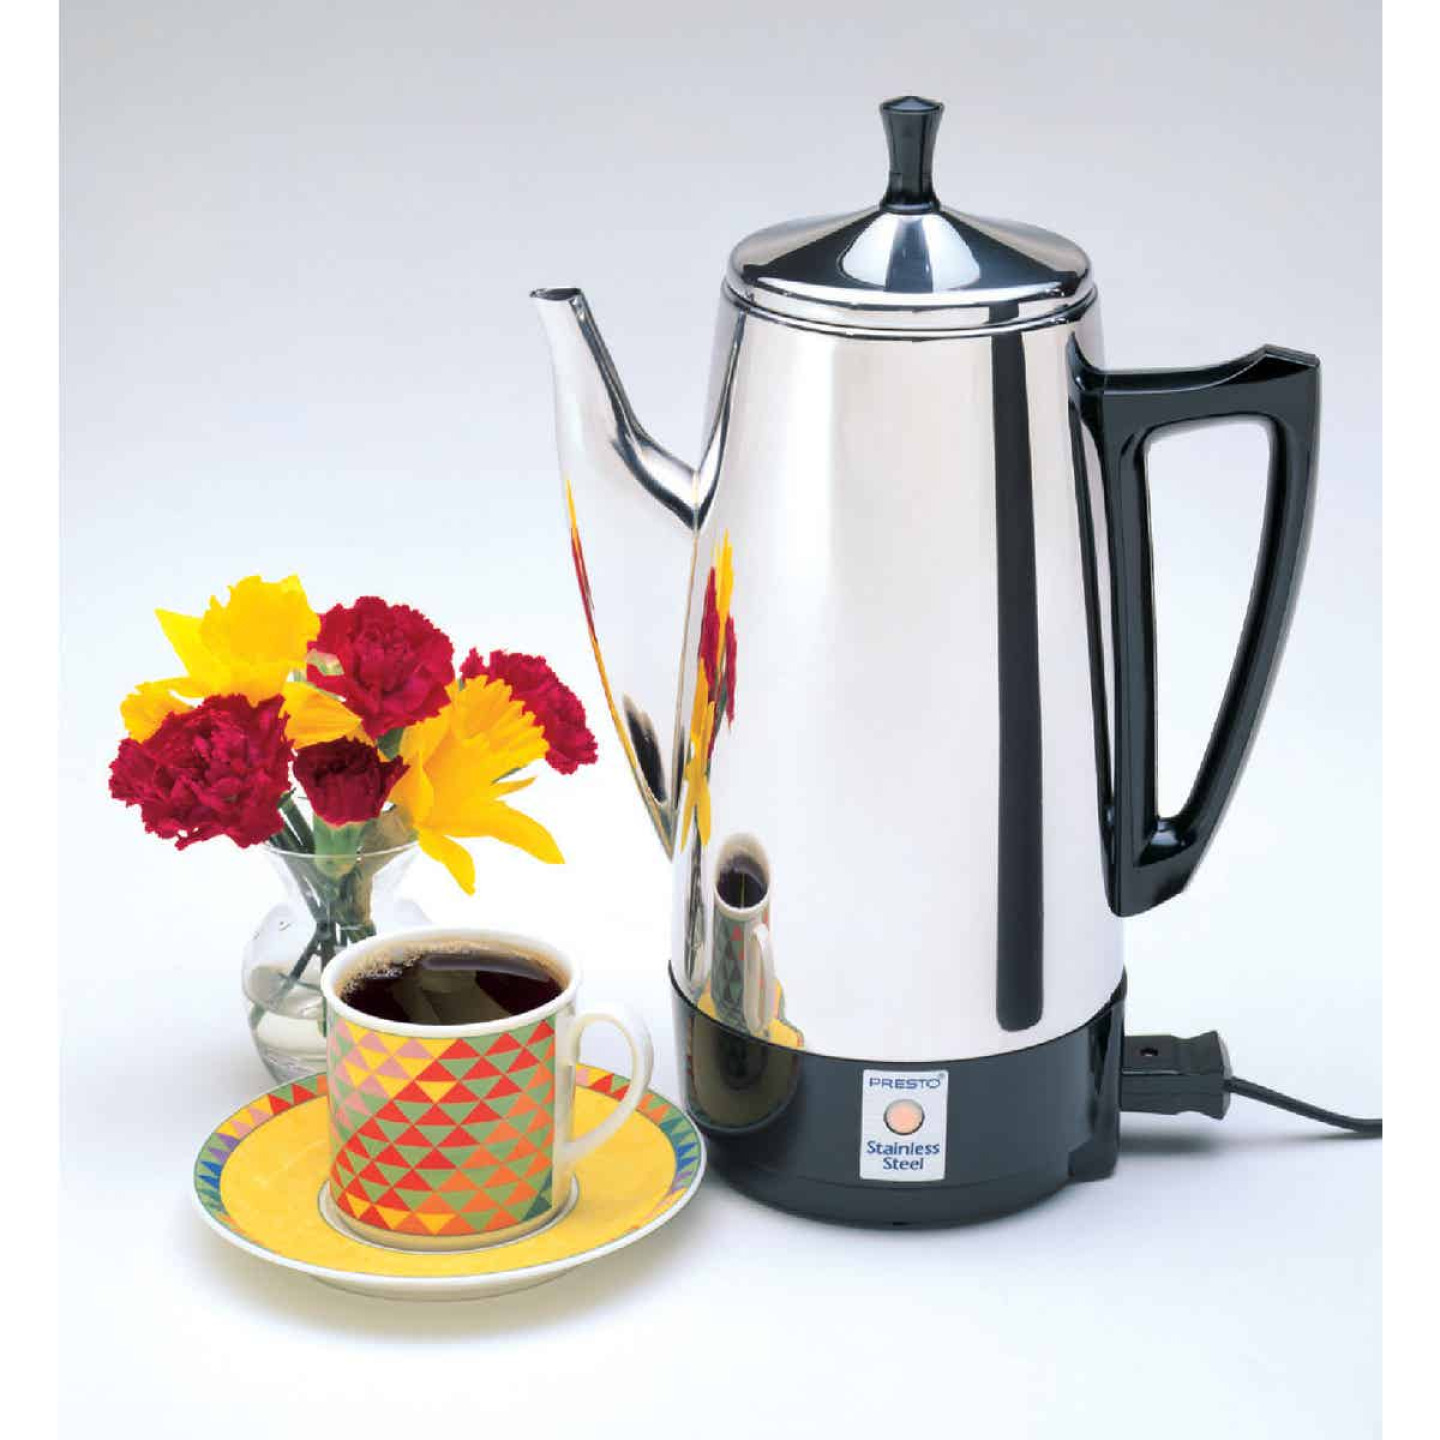 Presto 2 To 12 Cup Stainless Steel Electric Coffee Percolator Image 2